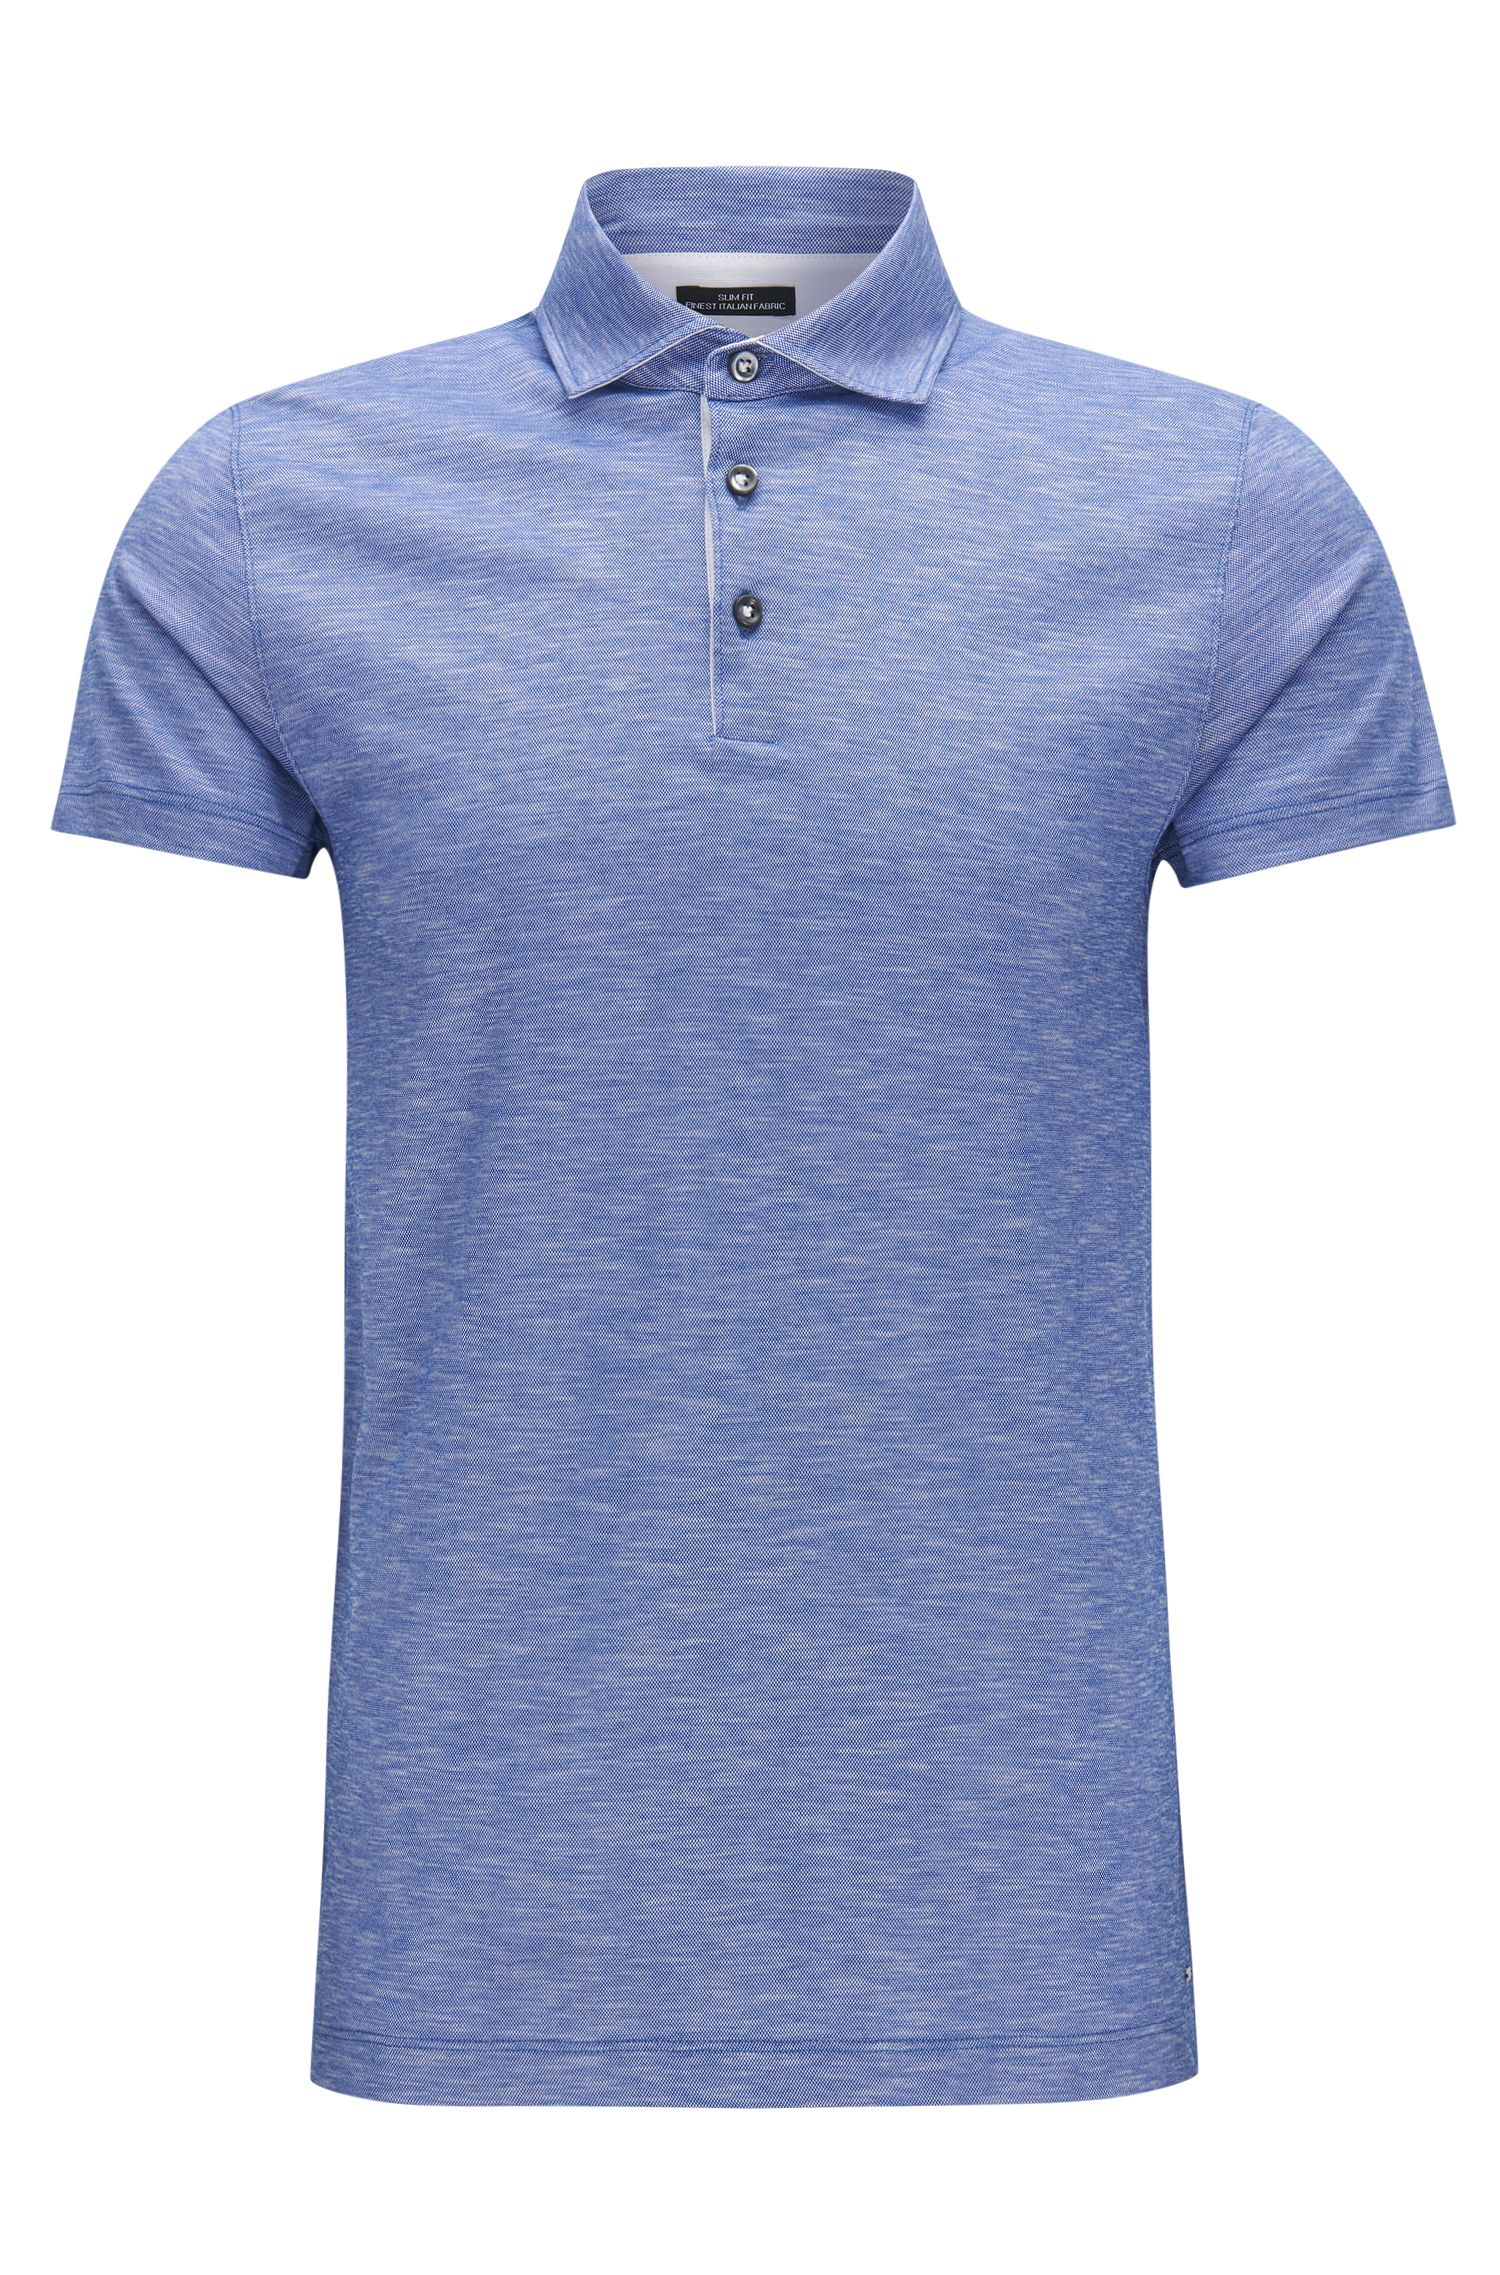 Slim-Fit Poloshirt aus Baumwoll-Jacquard in Leinen-Optik